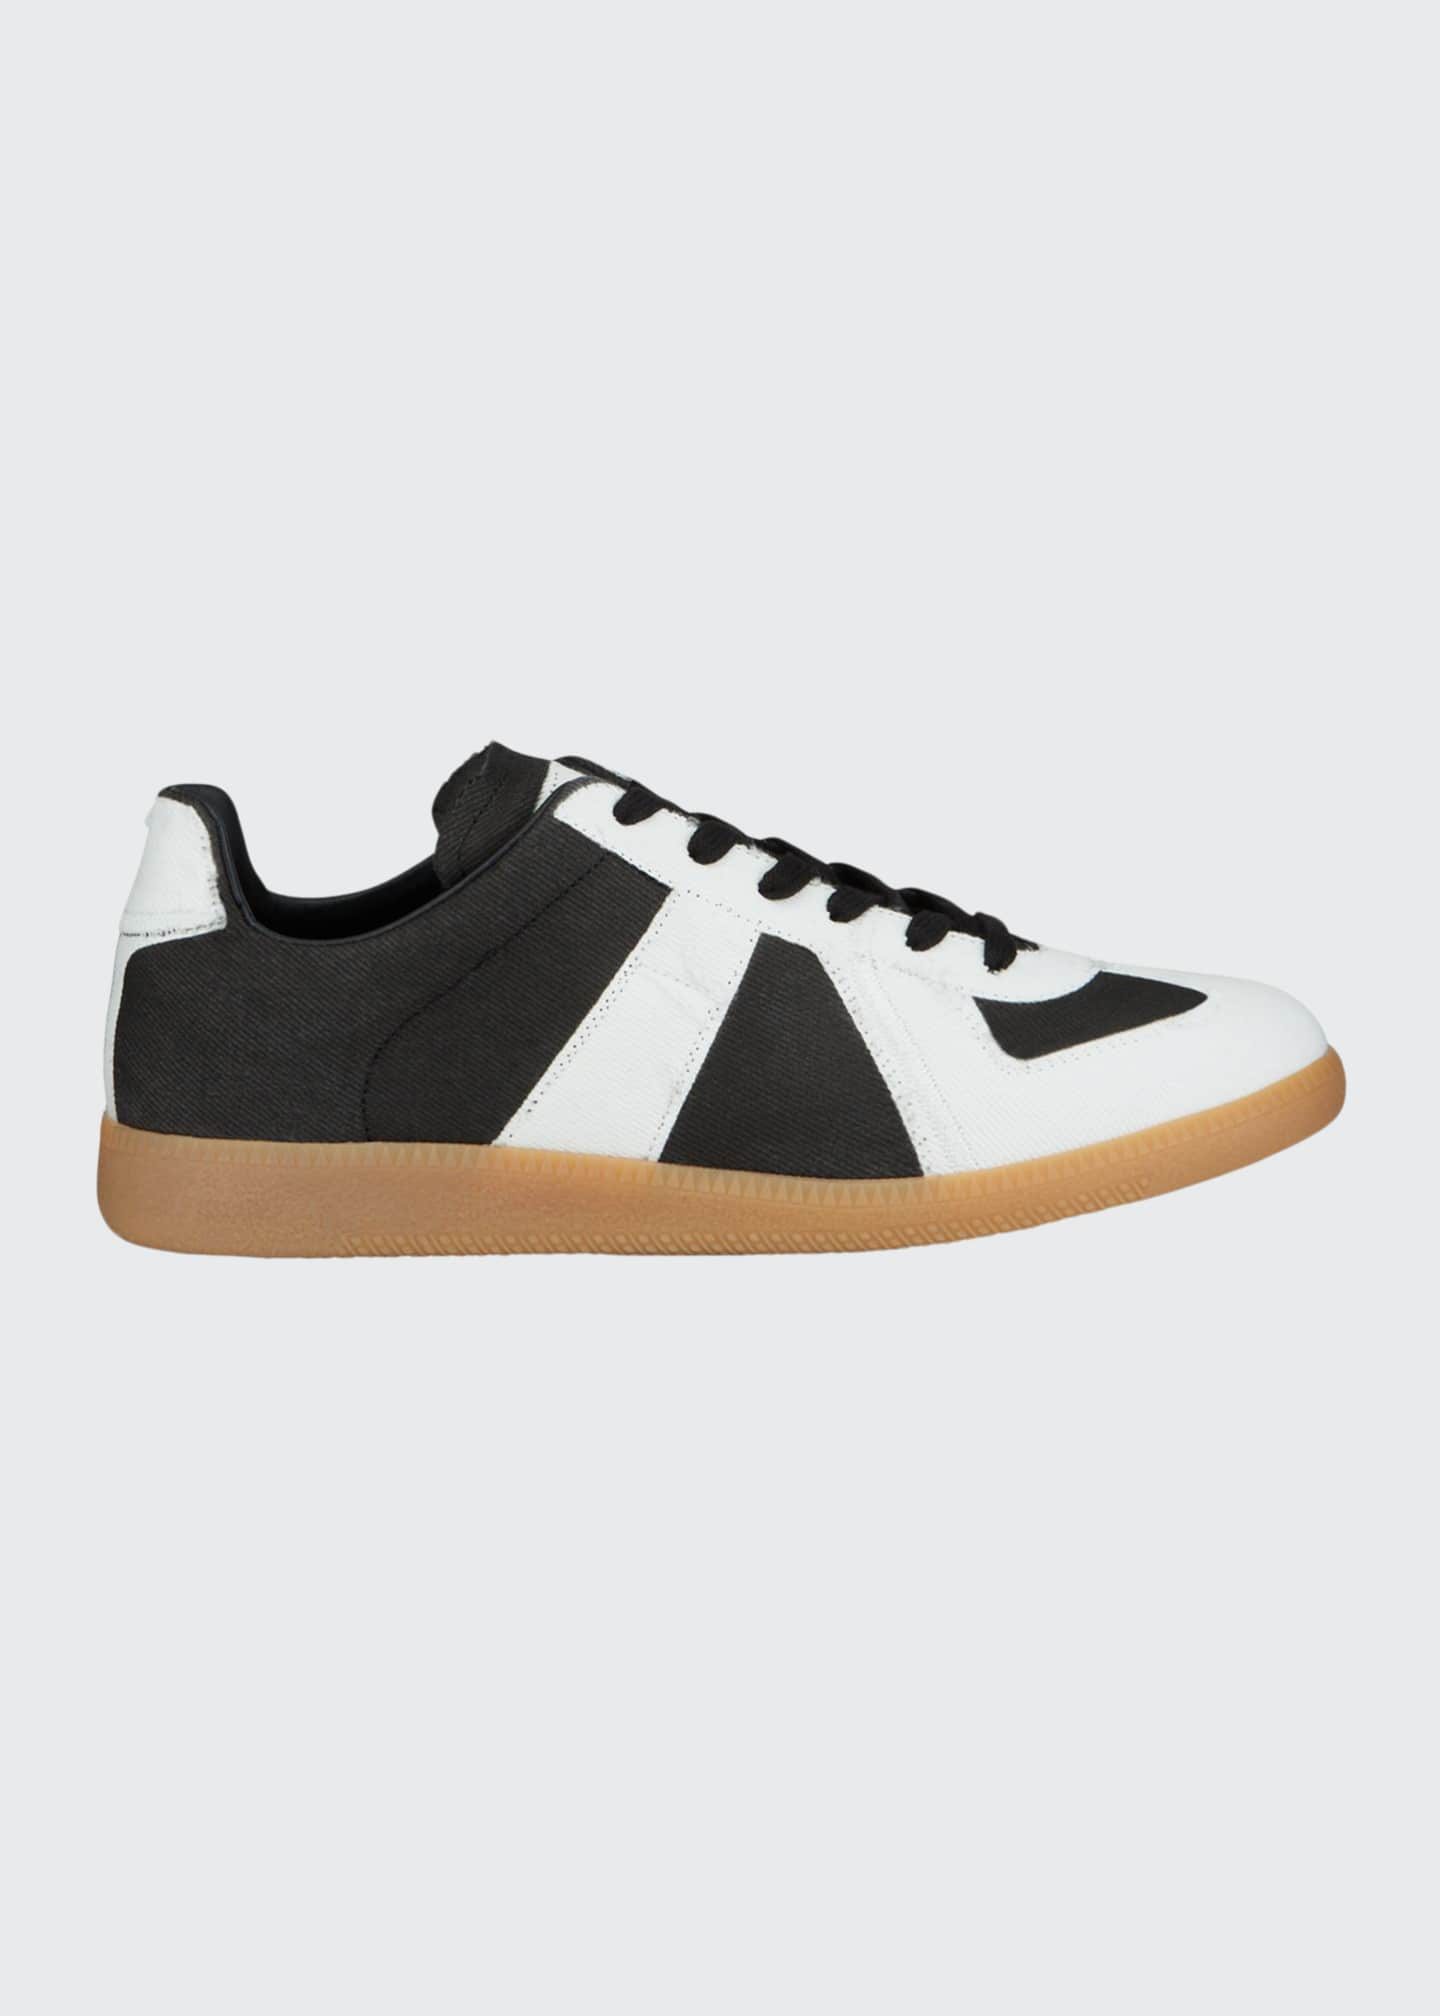 Image 1 of 4: Men's Canvas Low-Top Sneakers